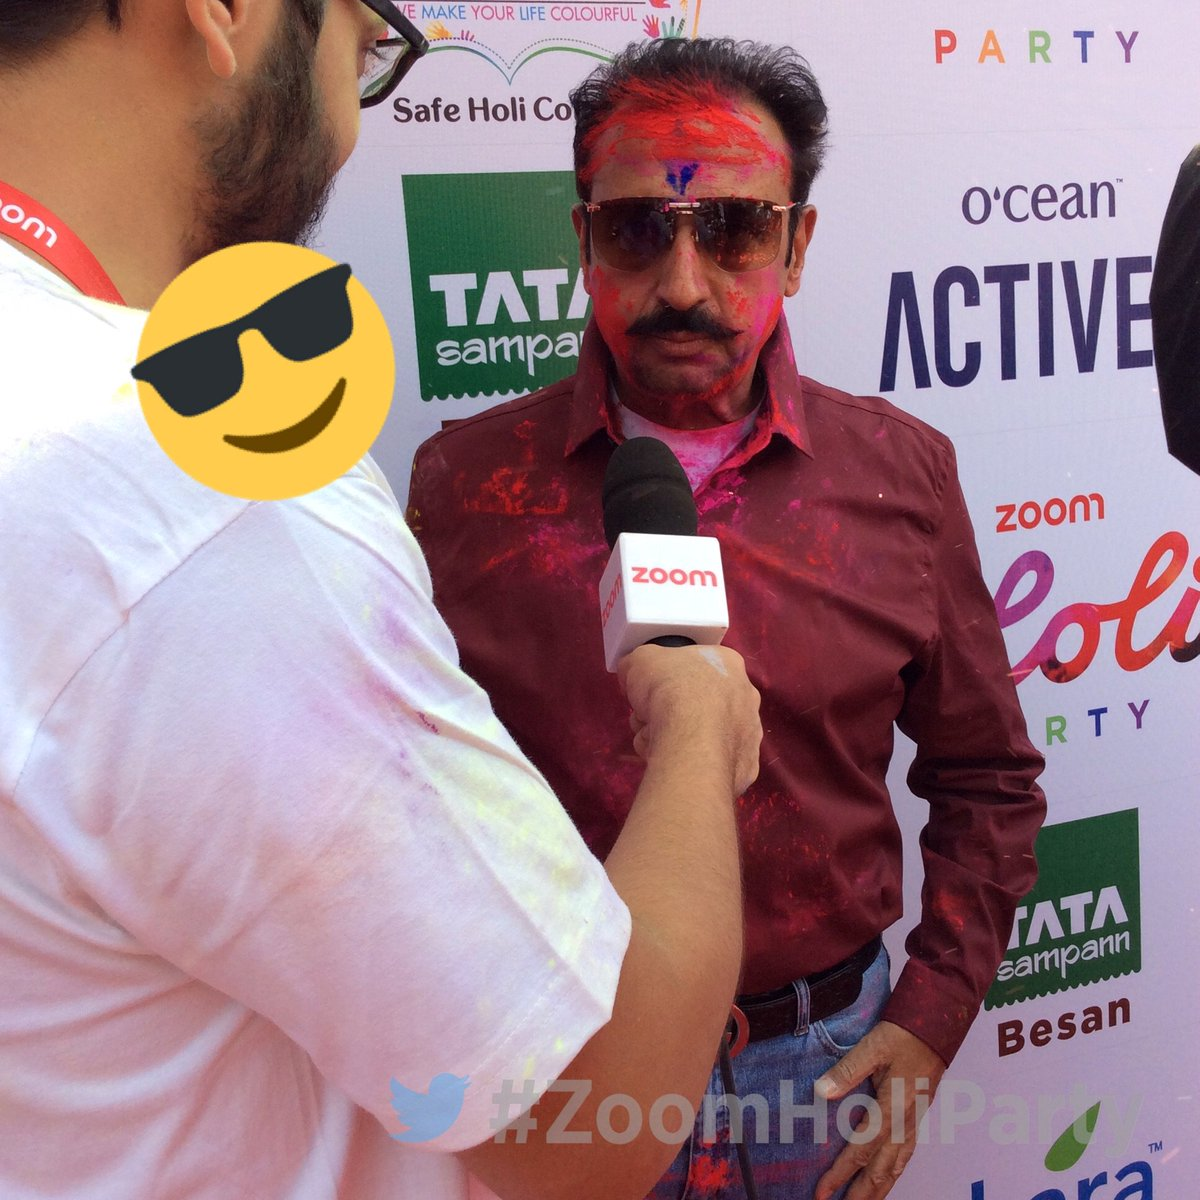 Zoom Holi Party with Celebs